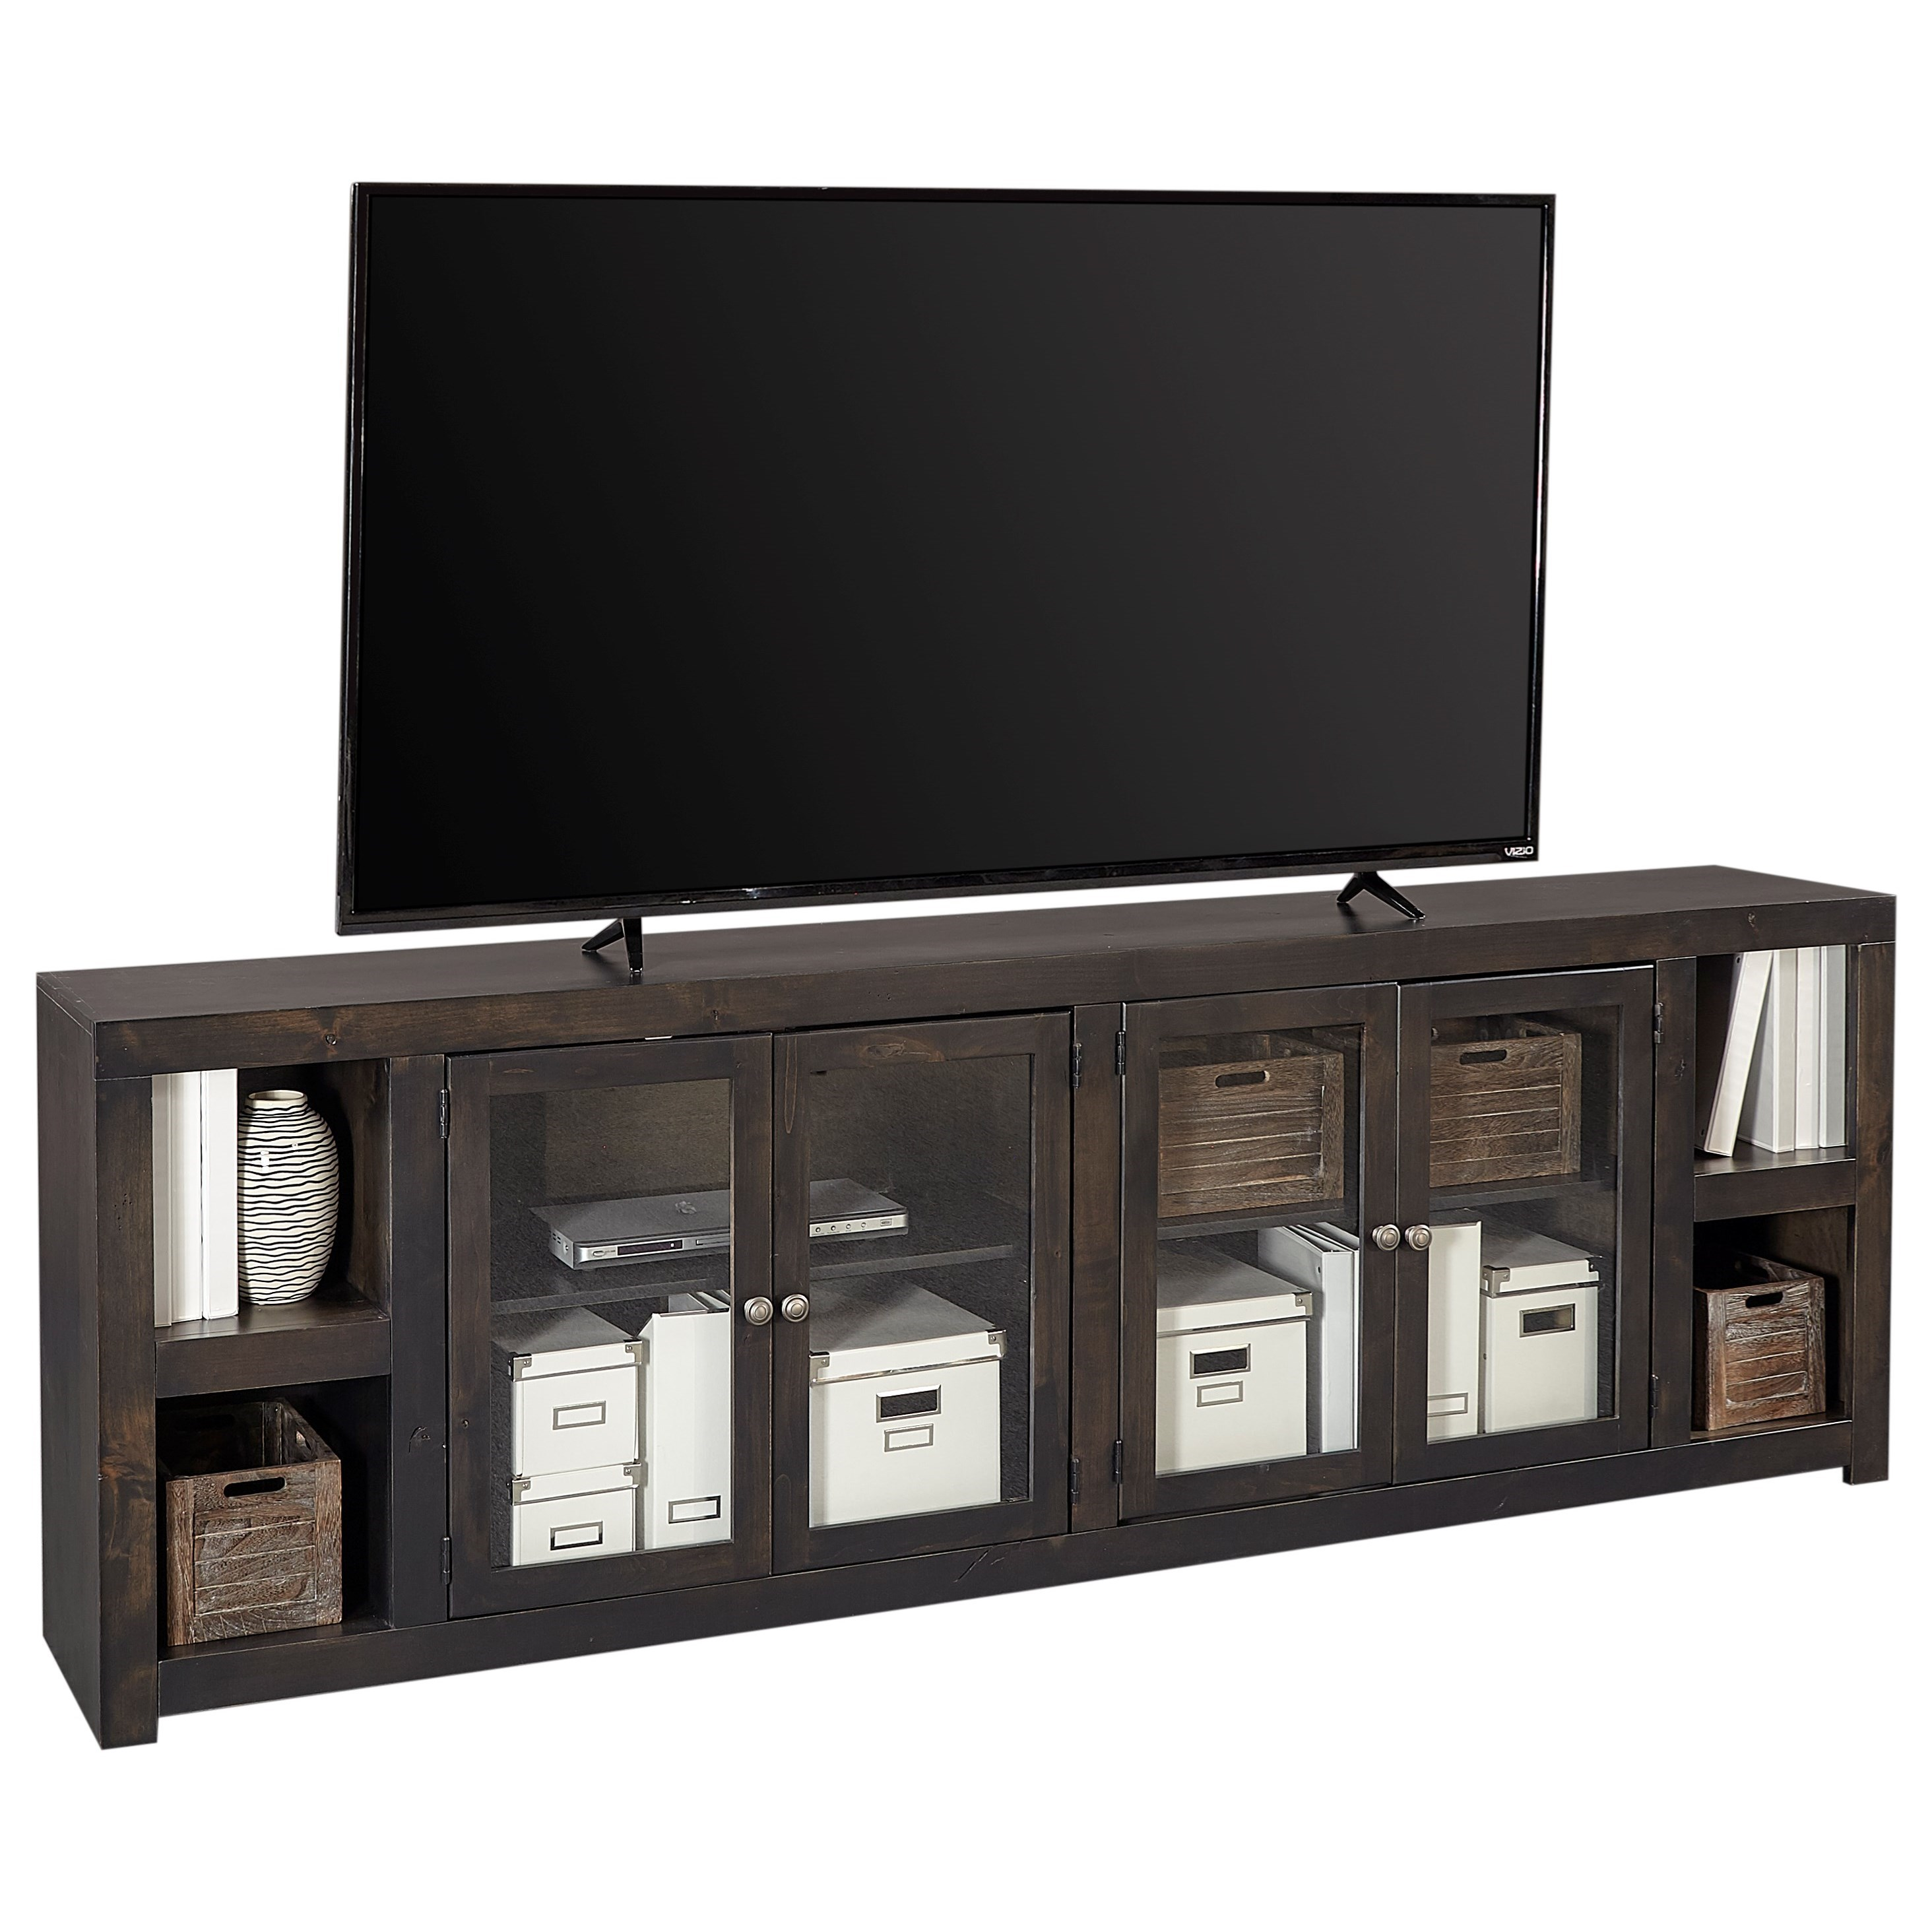 "Avery Loft 97"" TV Console by Aspenhome at Baer's Furniture"